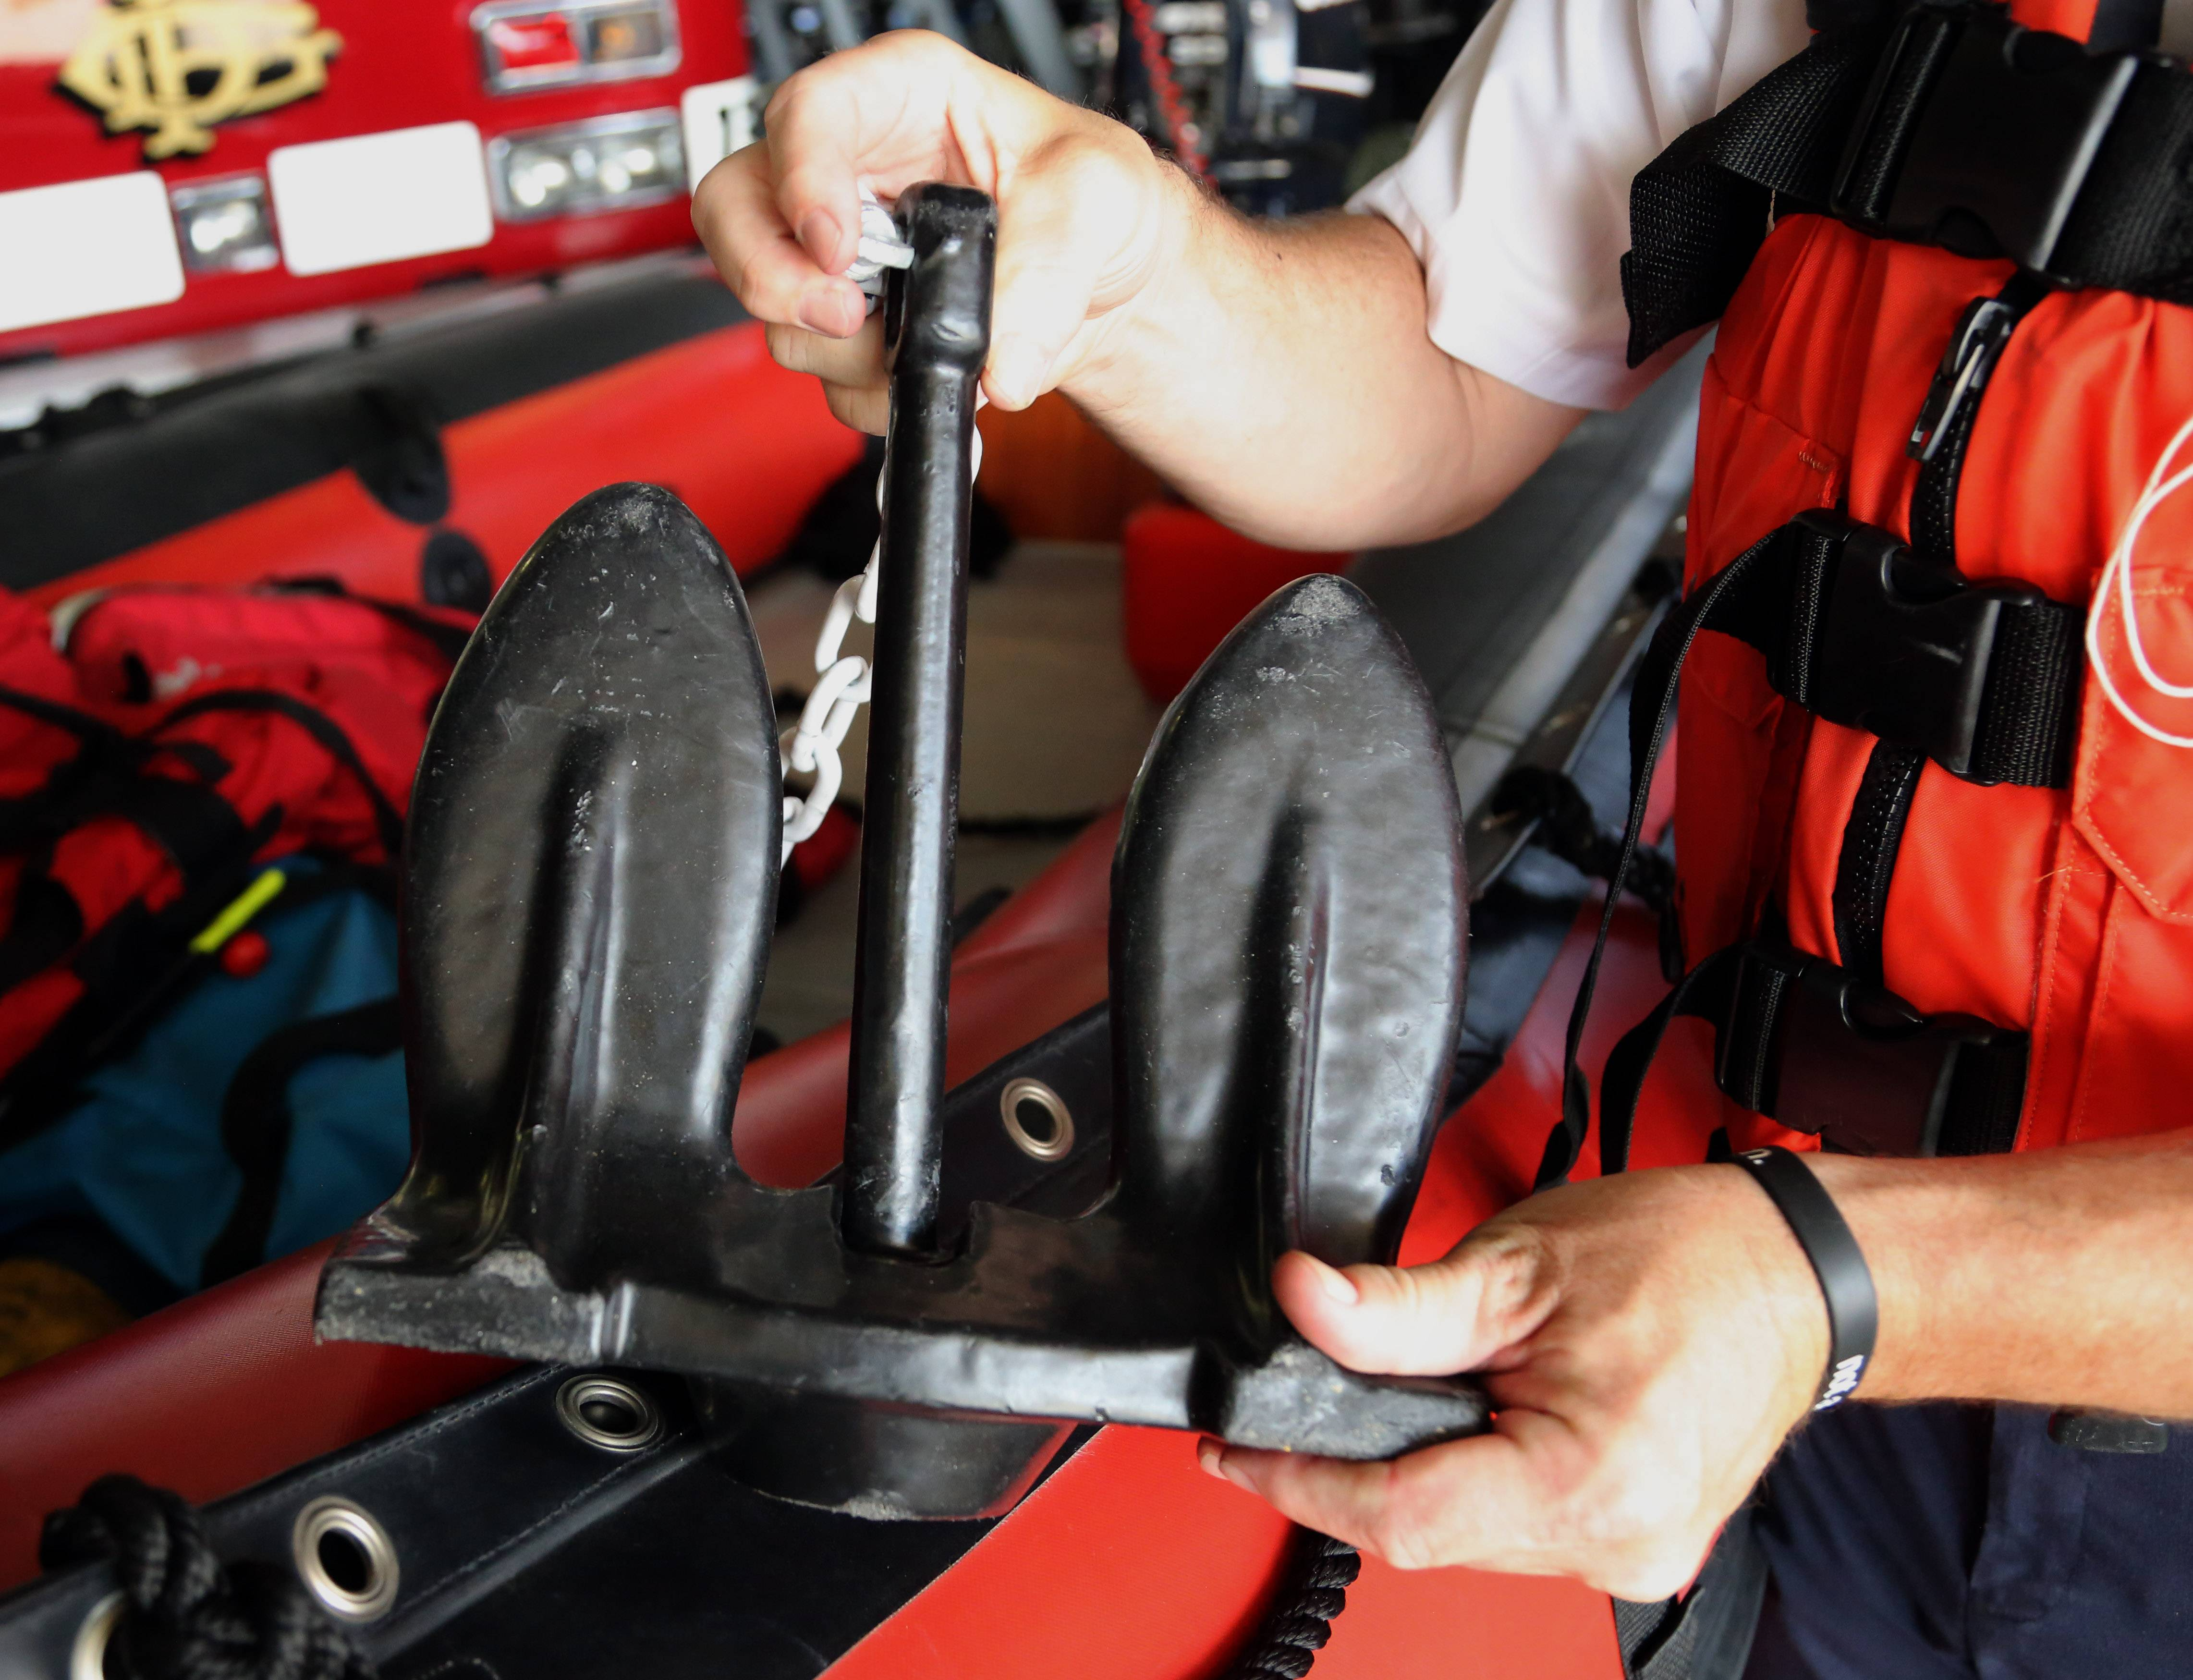 An anchor is an important device for any boater, especially when swimming off the boat, said John Skillman, the head of the dive team for Lake and McHenry Counties Specialized Response Teams.